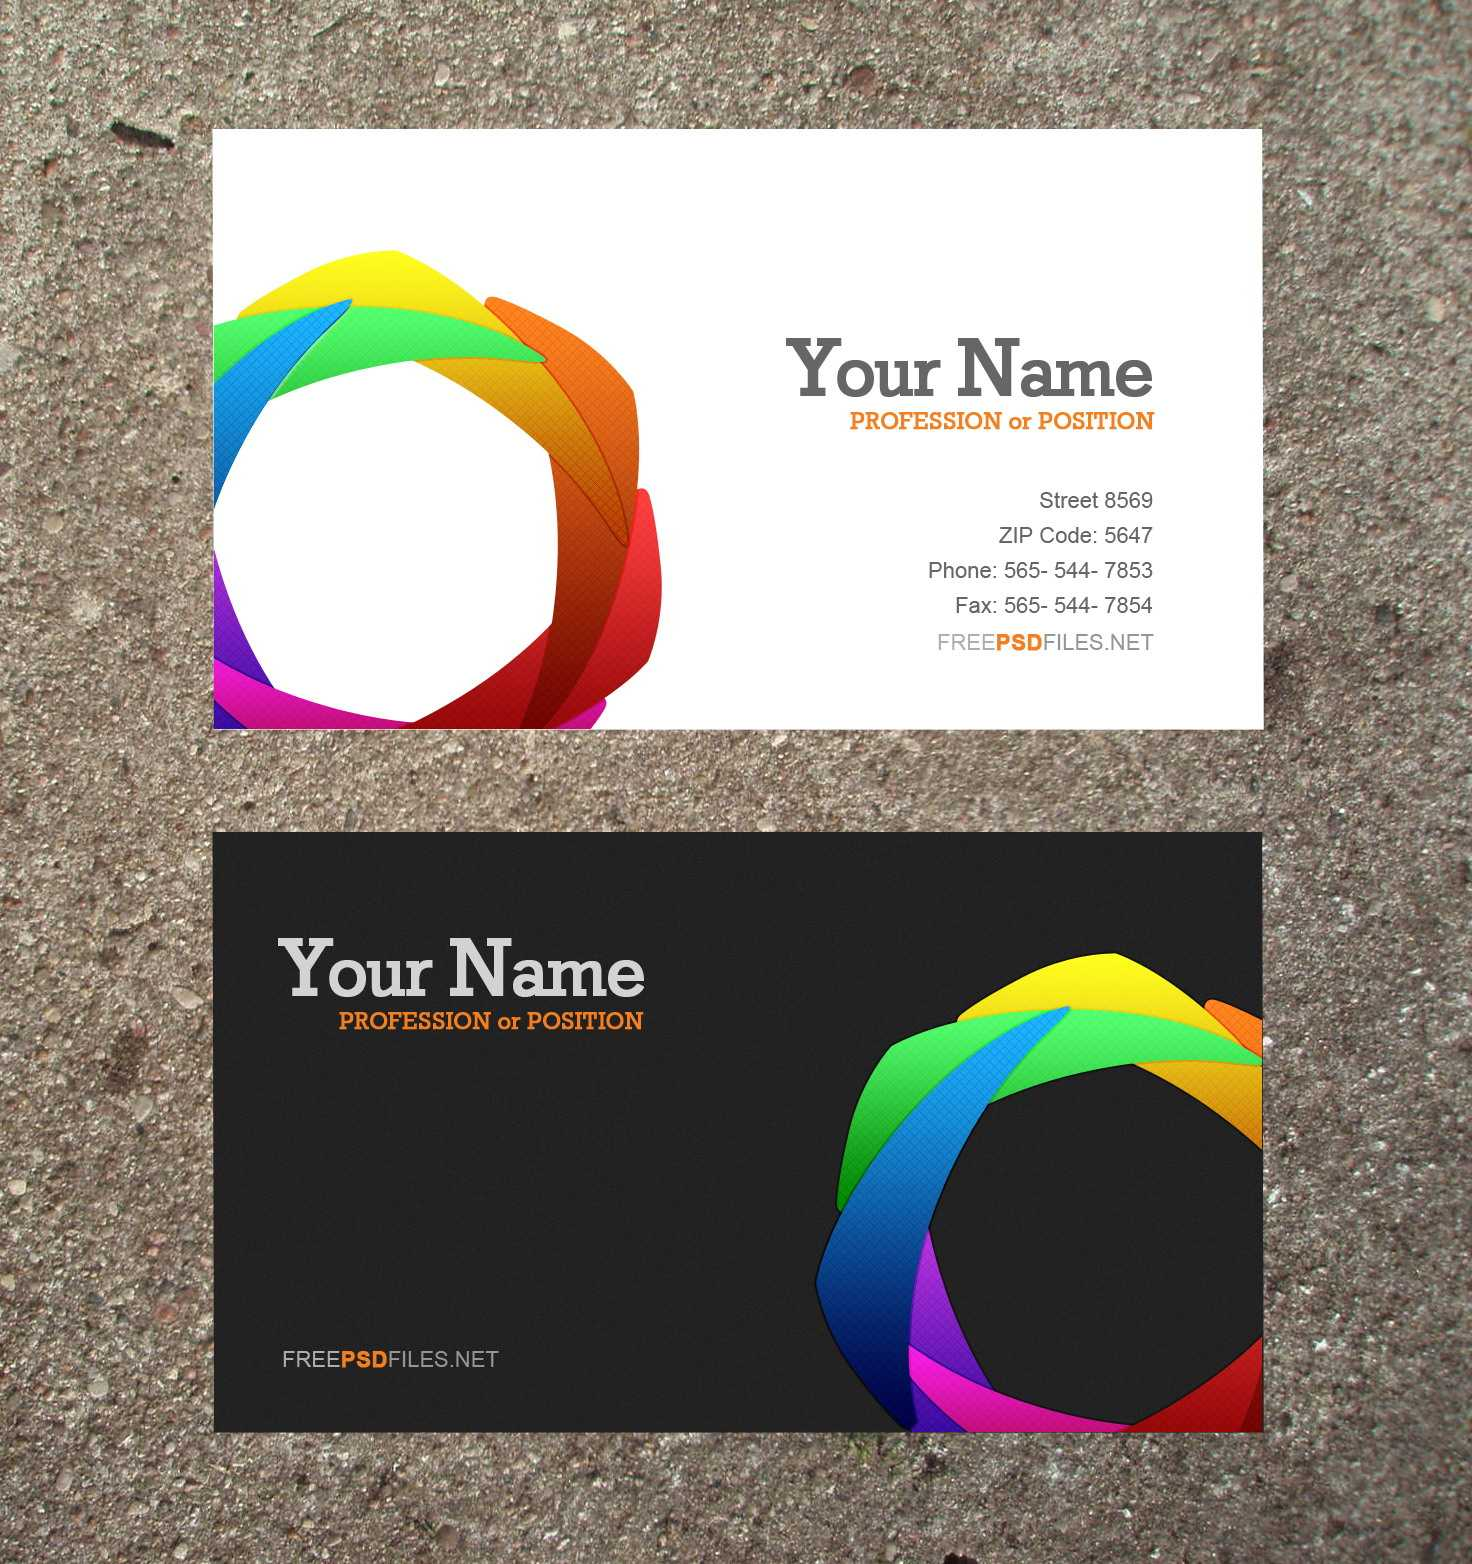 16 Business Card Templates Images - Free Business Card in Microsoft Templates For Business Cards